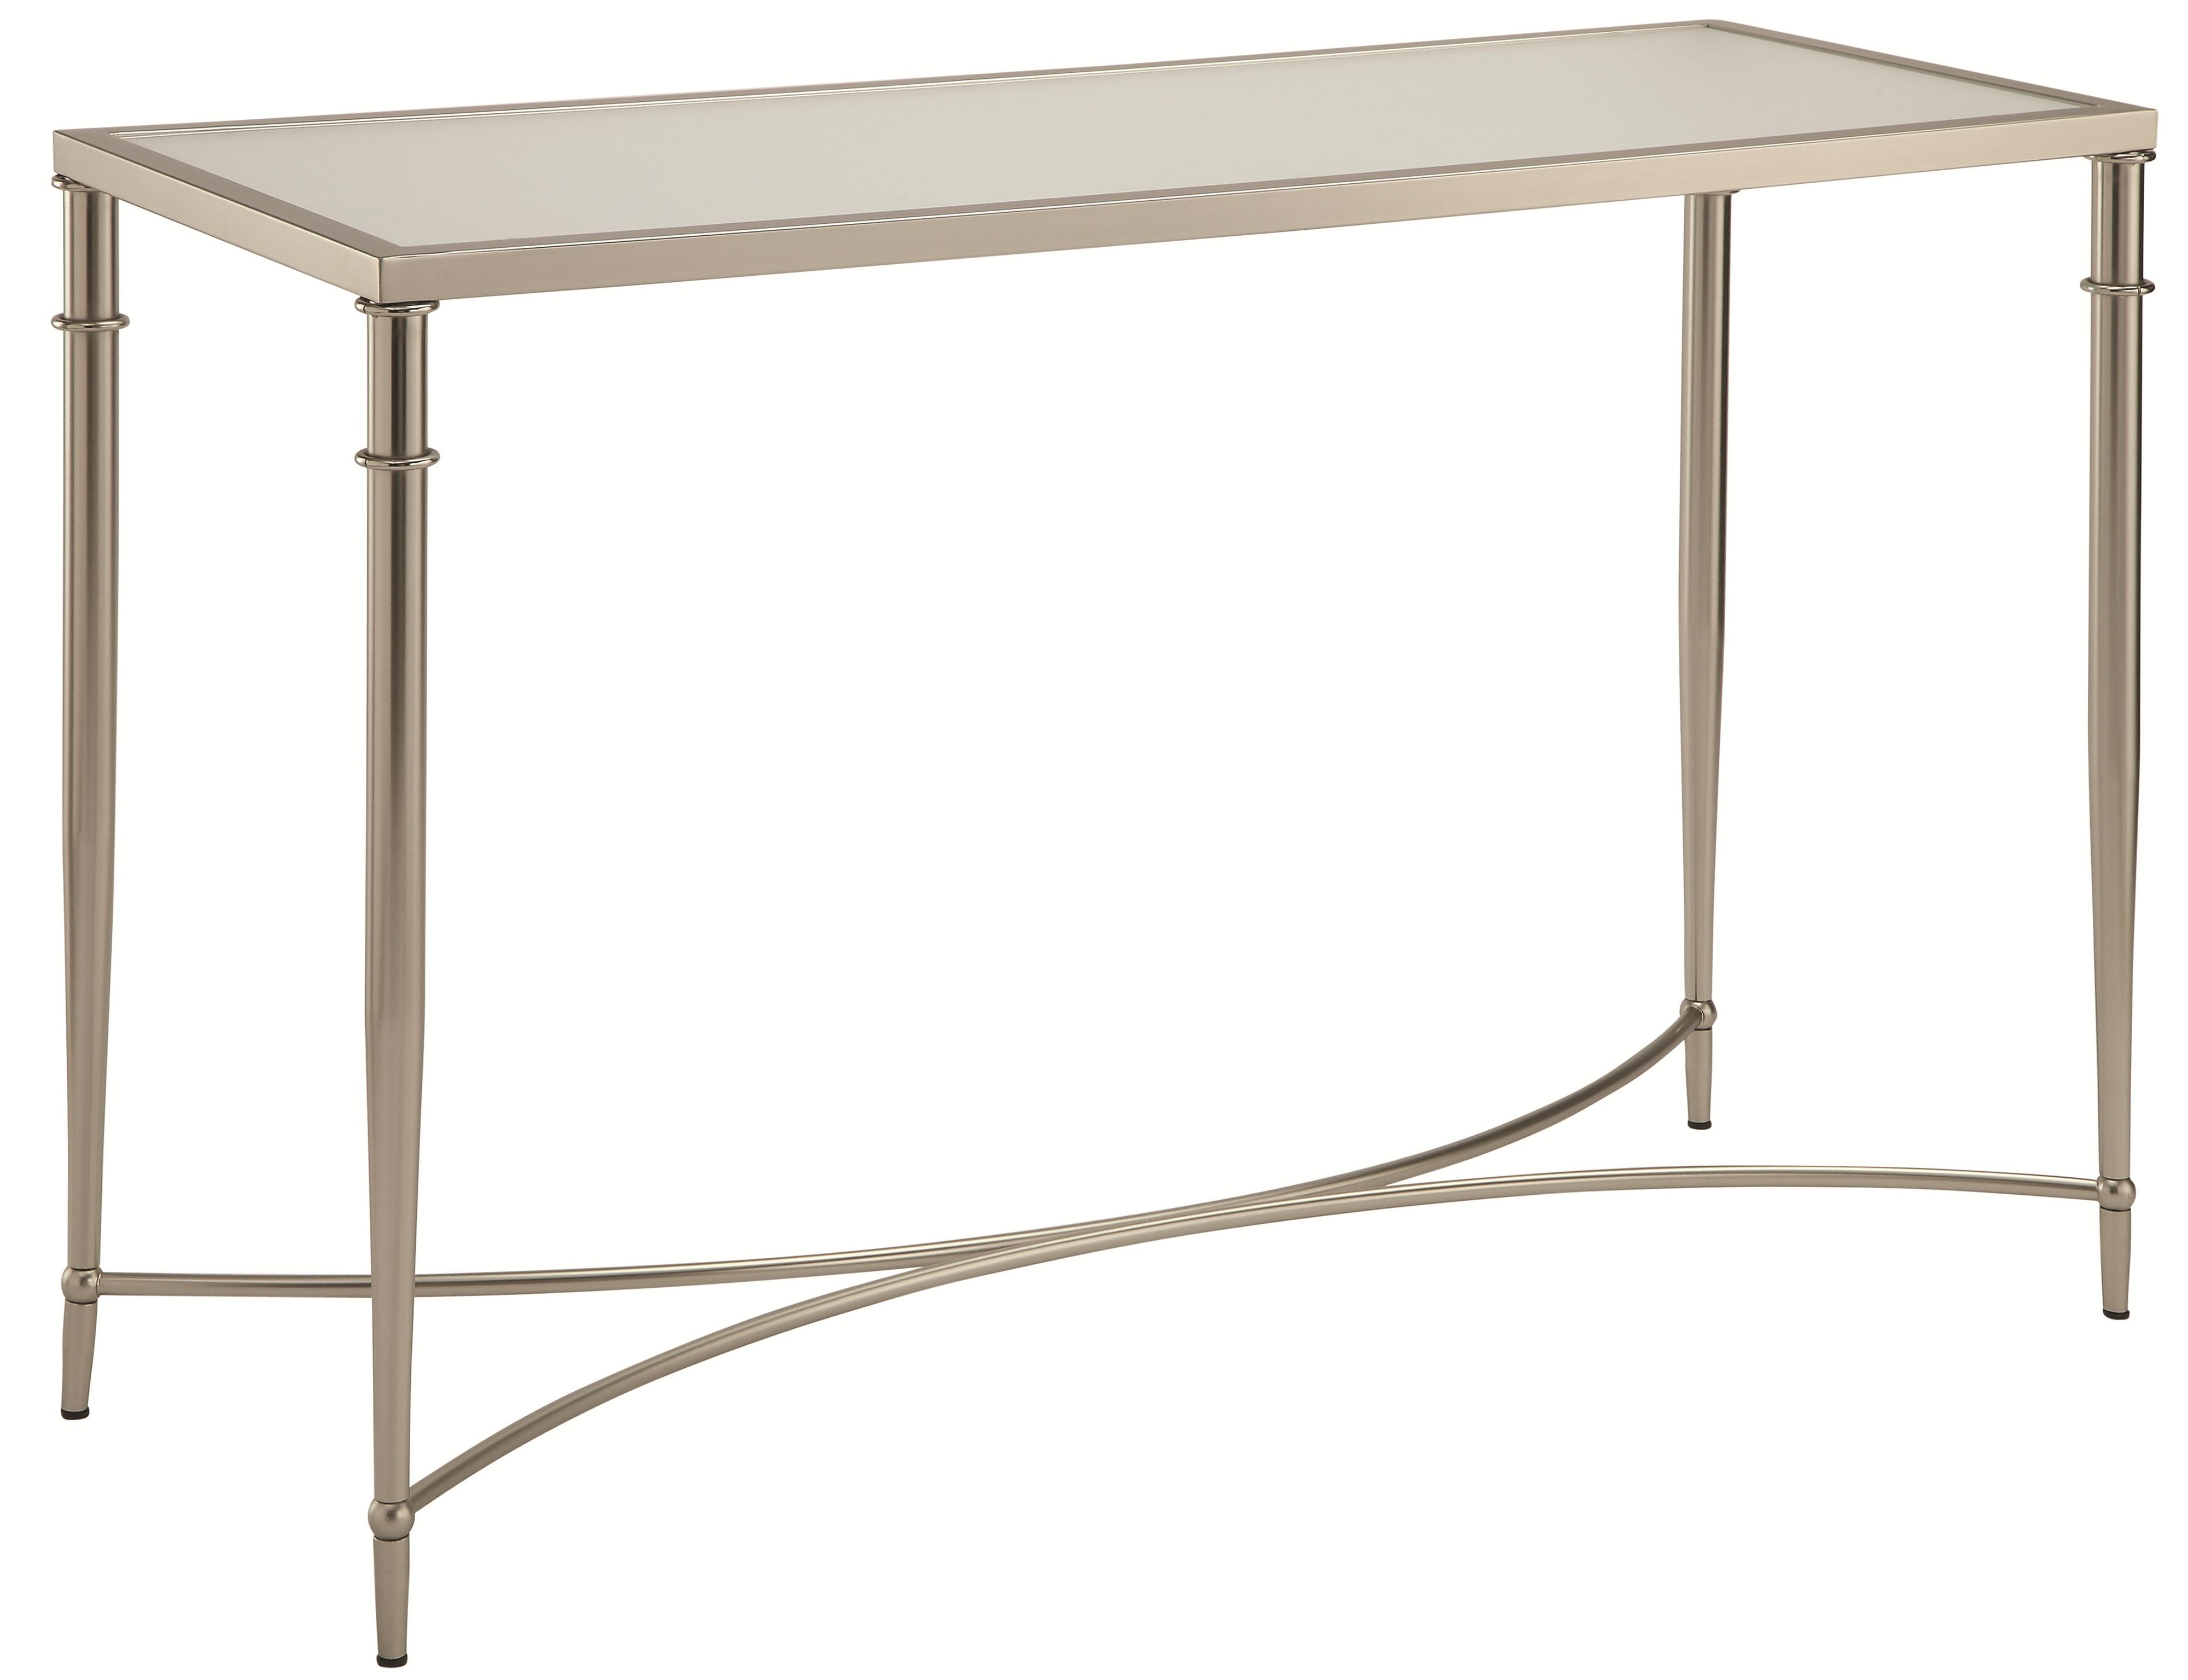 70334 Sofa Table with Metal Legs and Frosted Glass Top  : 70334703349 b0 from furniturewares.com size 4000 x 3071 jpeg 358kB